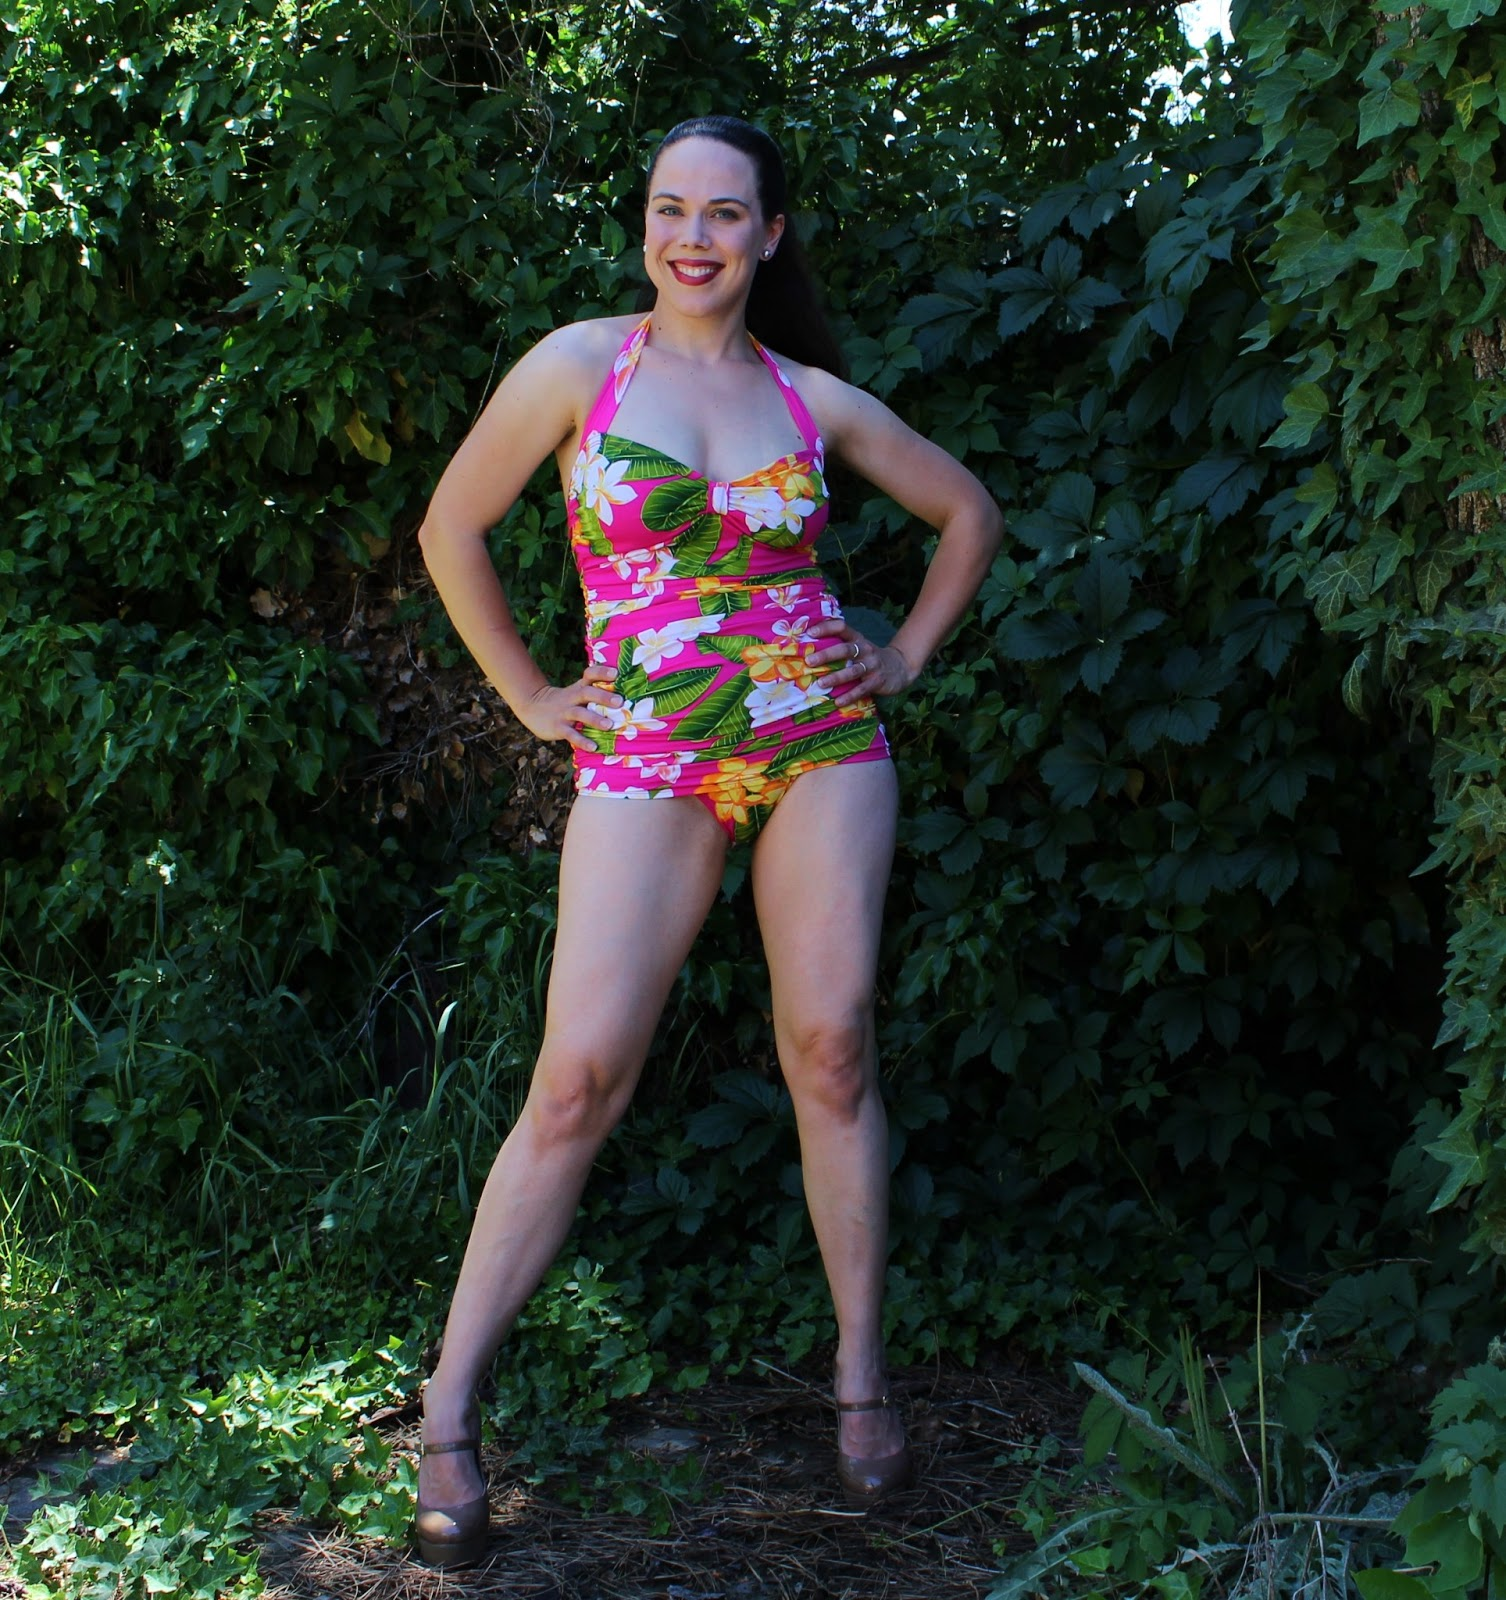 5b6ffdc5b0f78 Kadiddlehopper  Closet Case Files  Bombshell swimsuit - And is it ever!